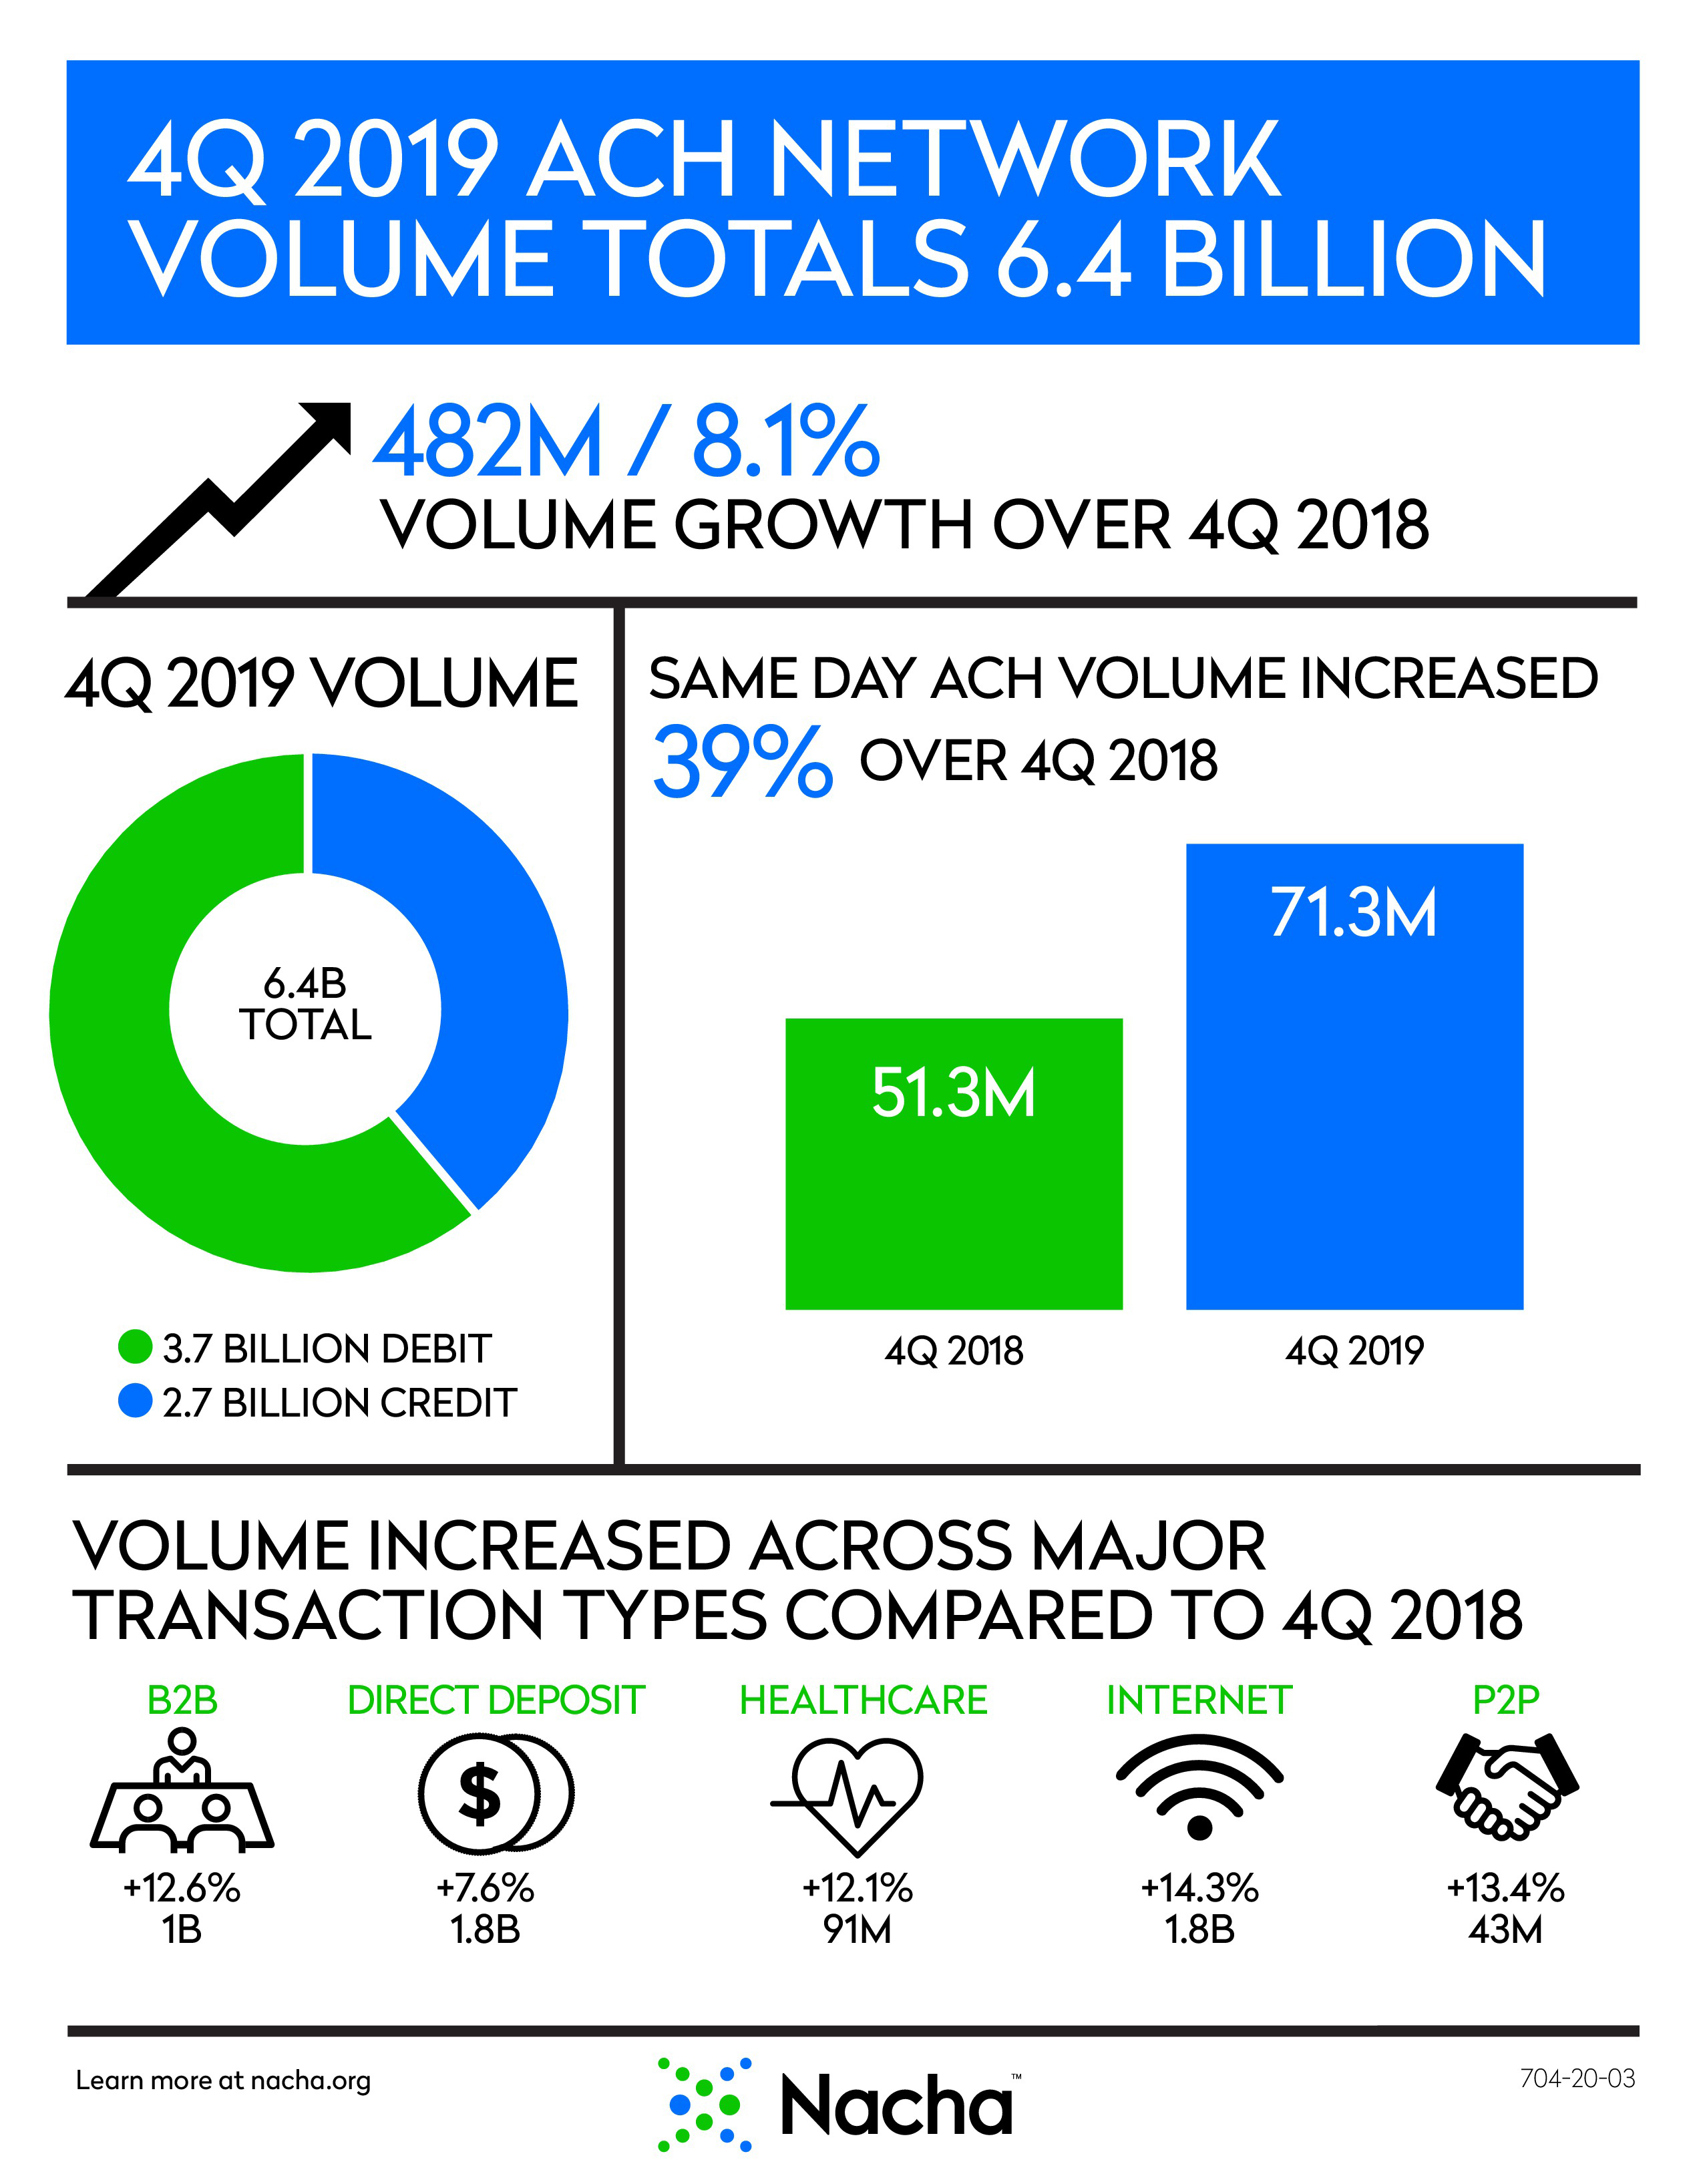 image of fourth quarter 2019 ach network infographic